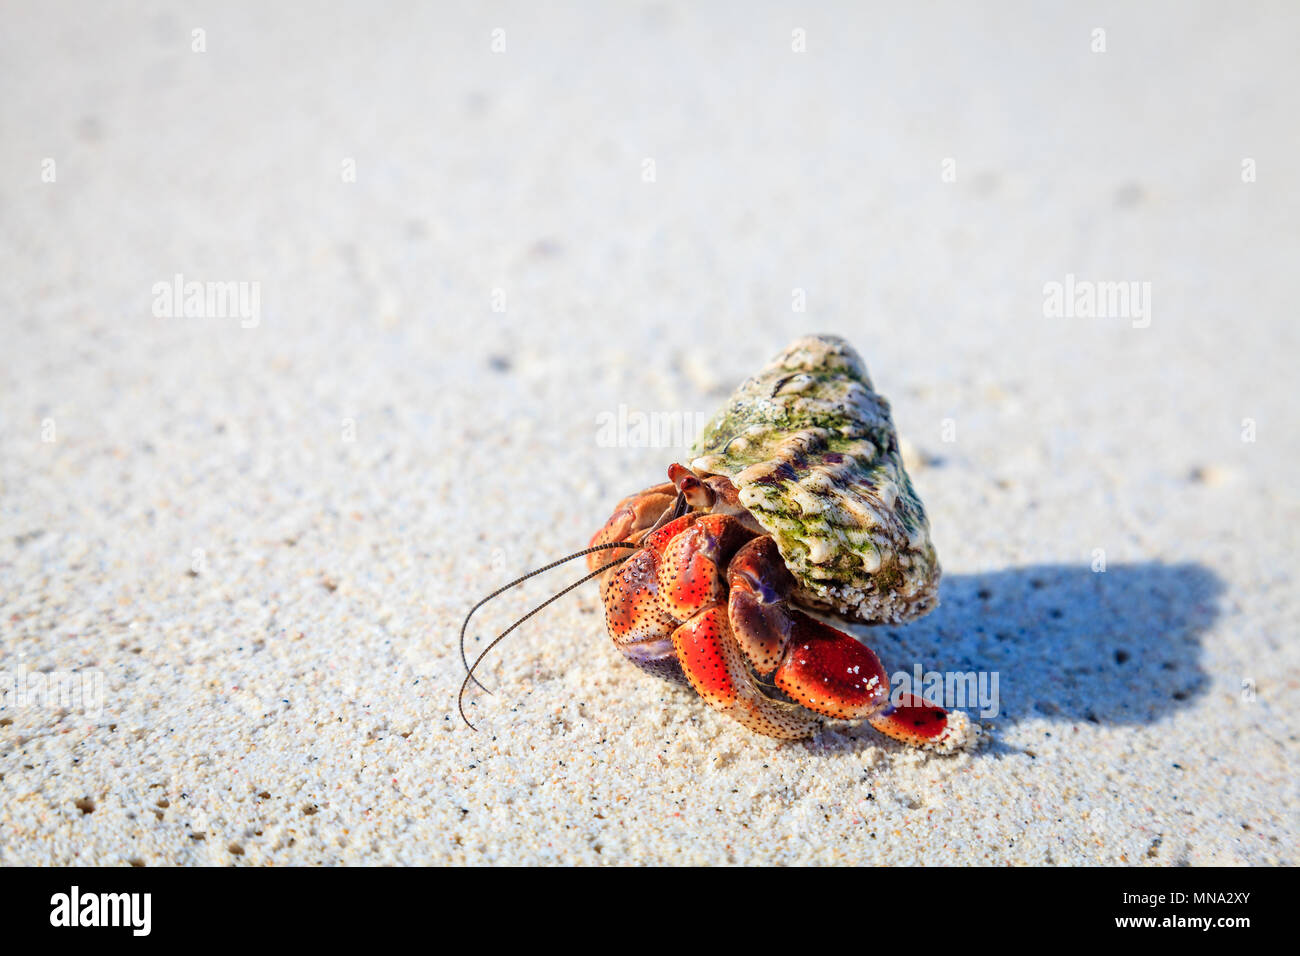 Hermit crab crawling on a beach in British Virgin Islands - Stock Image